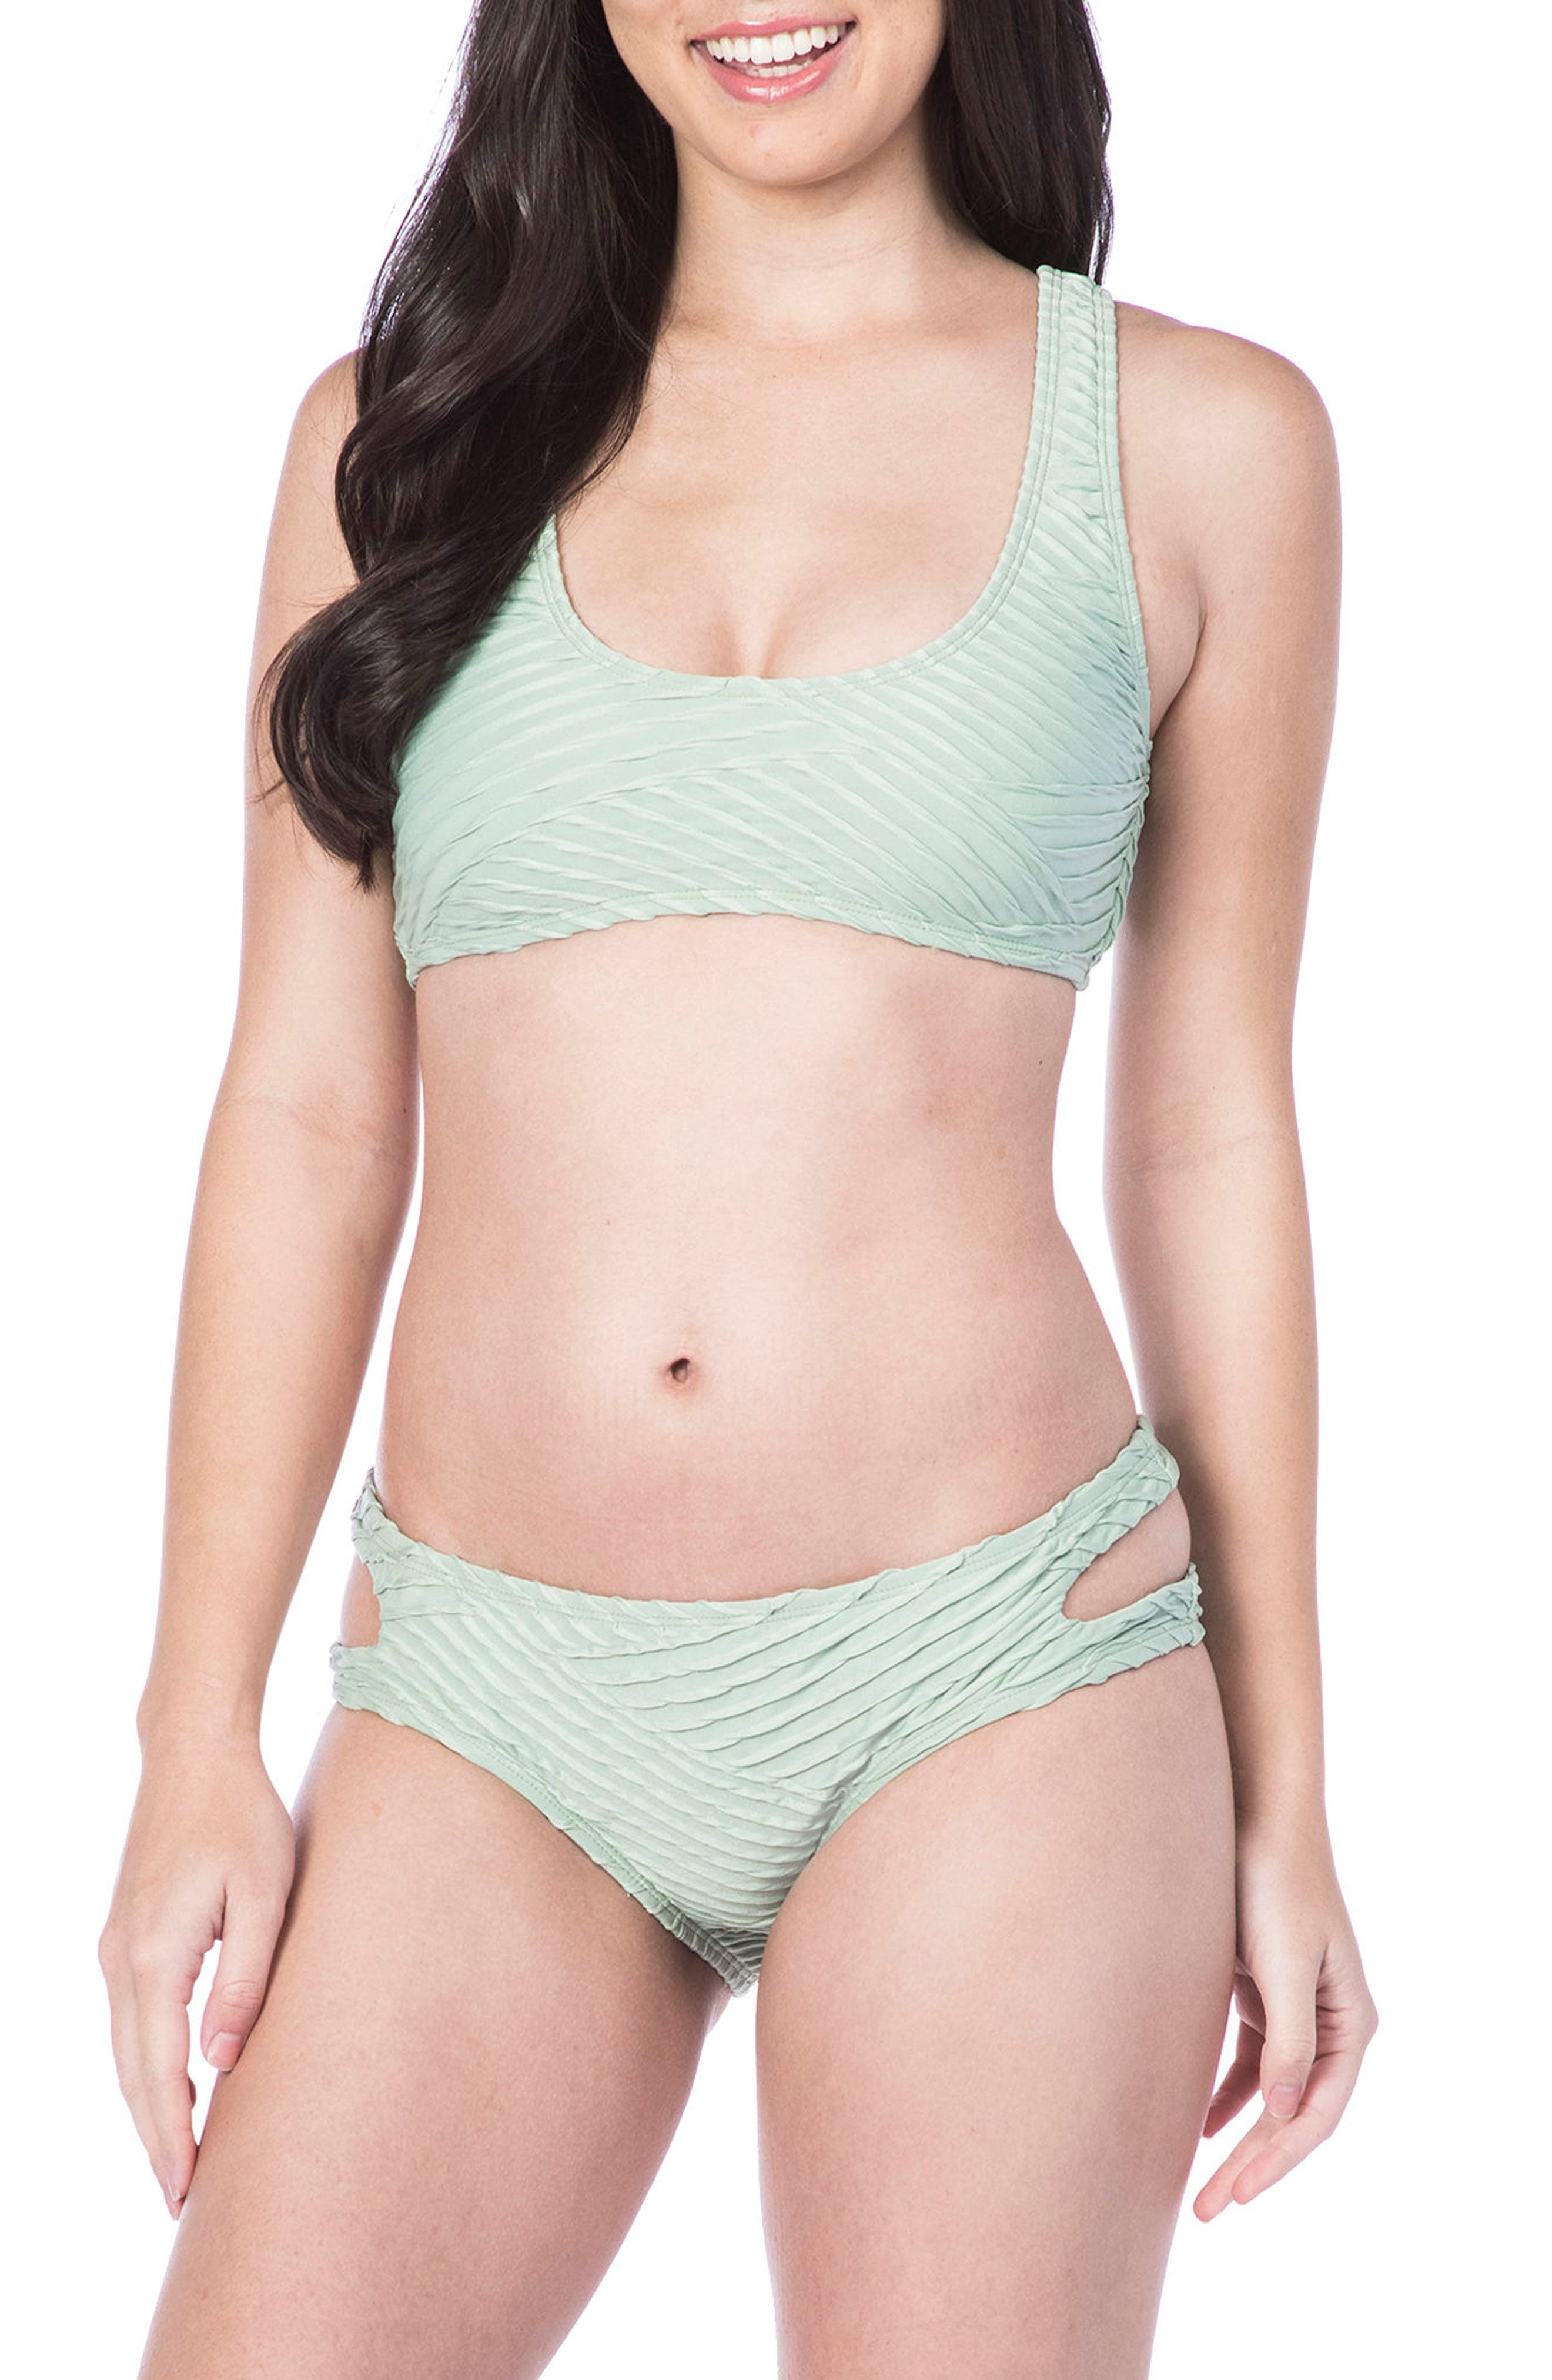 Sand Dune Hipster Bikini Bottoms,                             Alternate thumbnail 3, color,                             SAGE